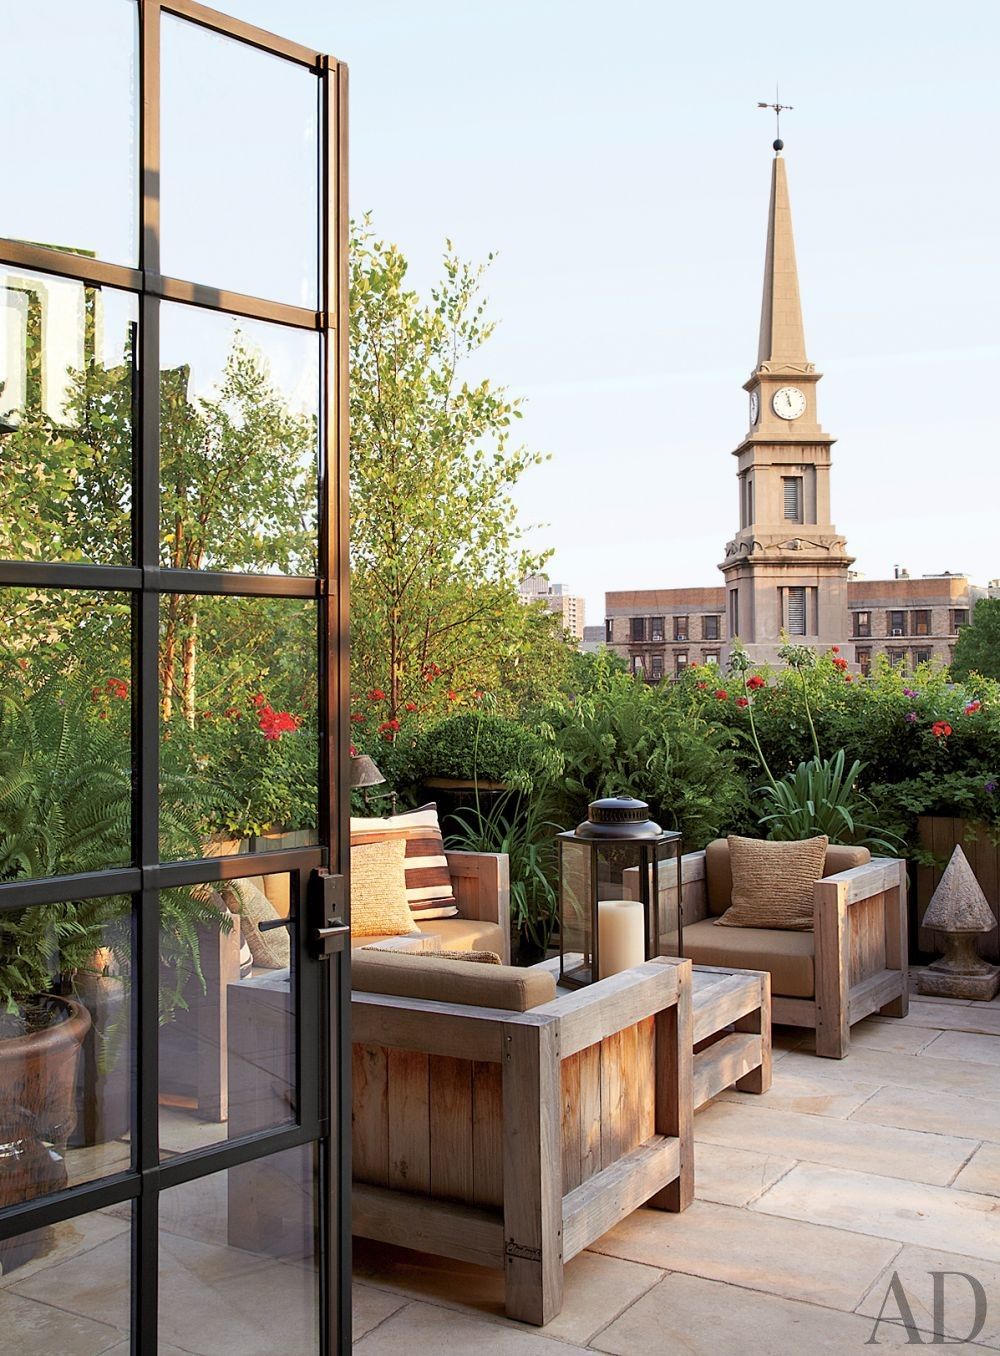 Rustic Outdoor Space by Alfredo Paredes and Michael Neumann Architecture in New York, New York